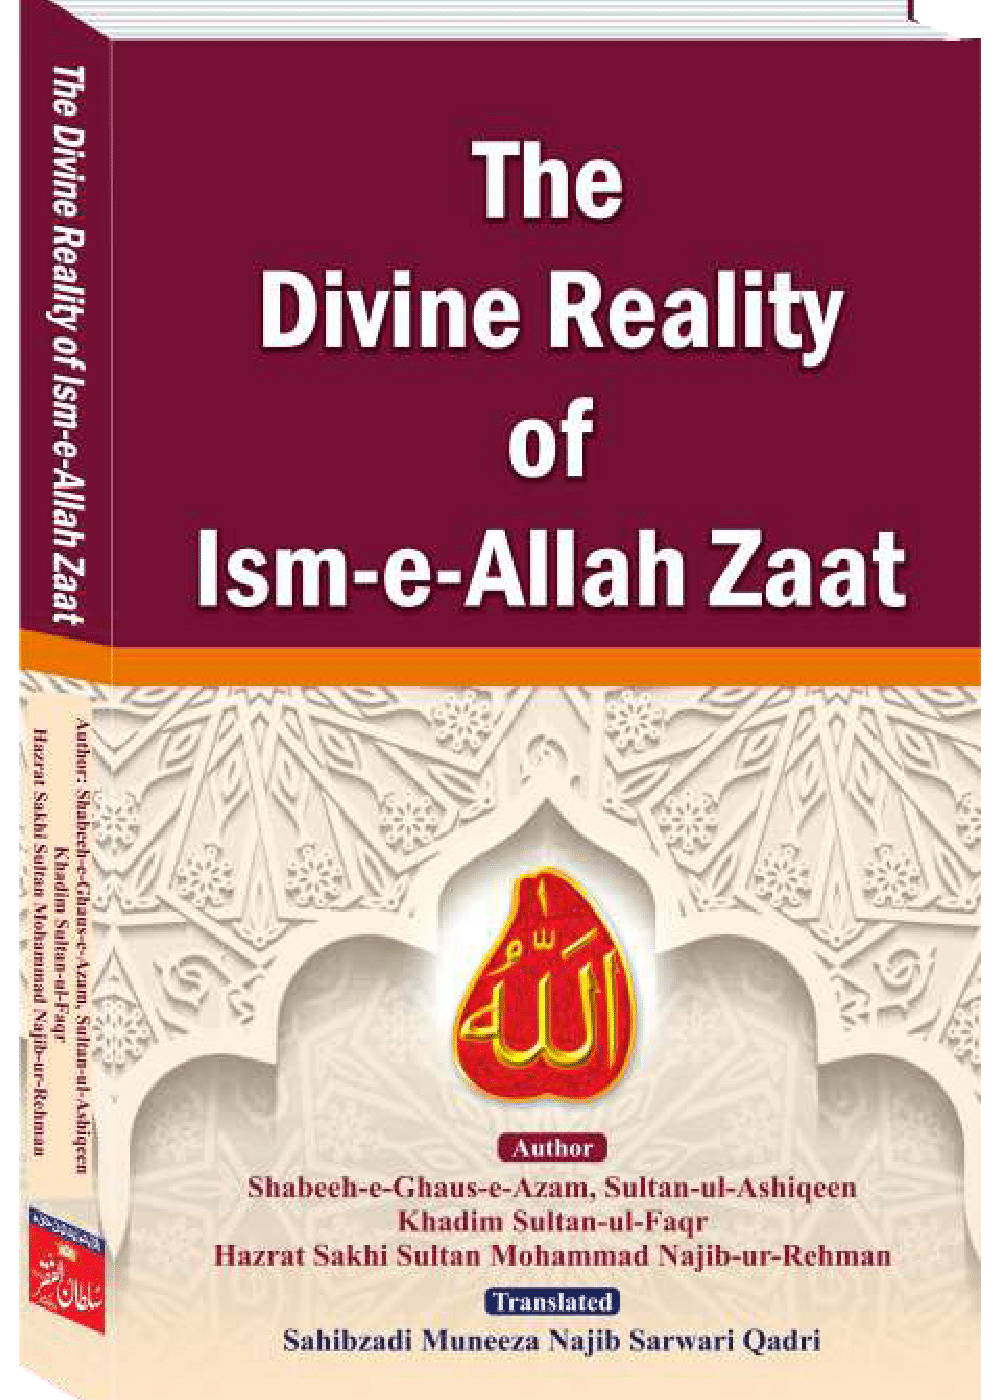 The-Divine-Reality-of-Ism-e-Allah-Zaat